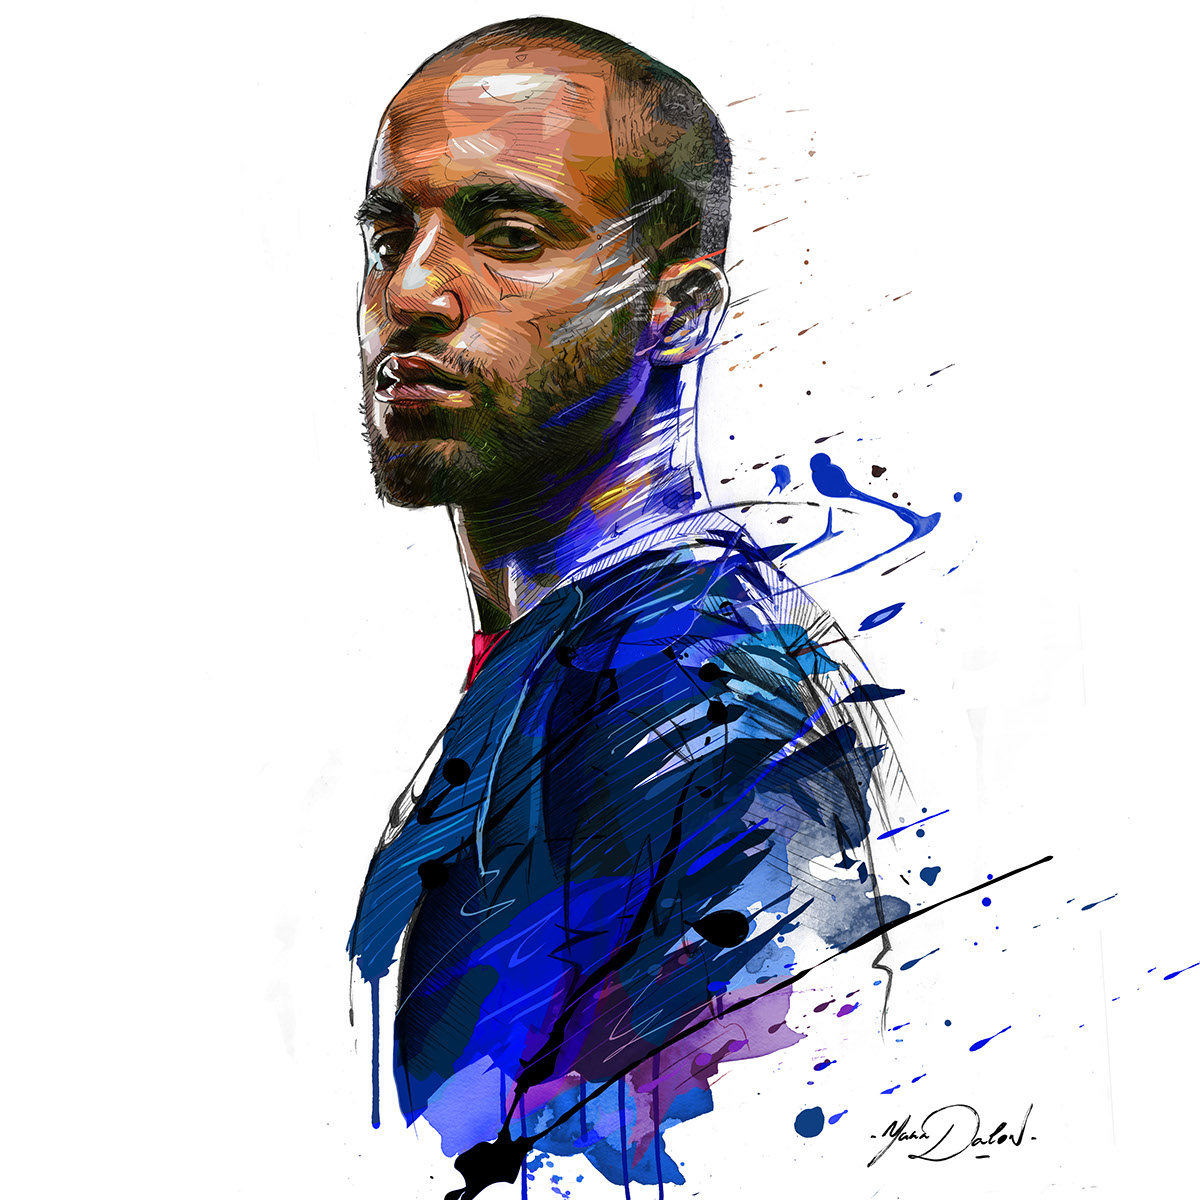 Lucas Moura On Behance